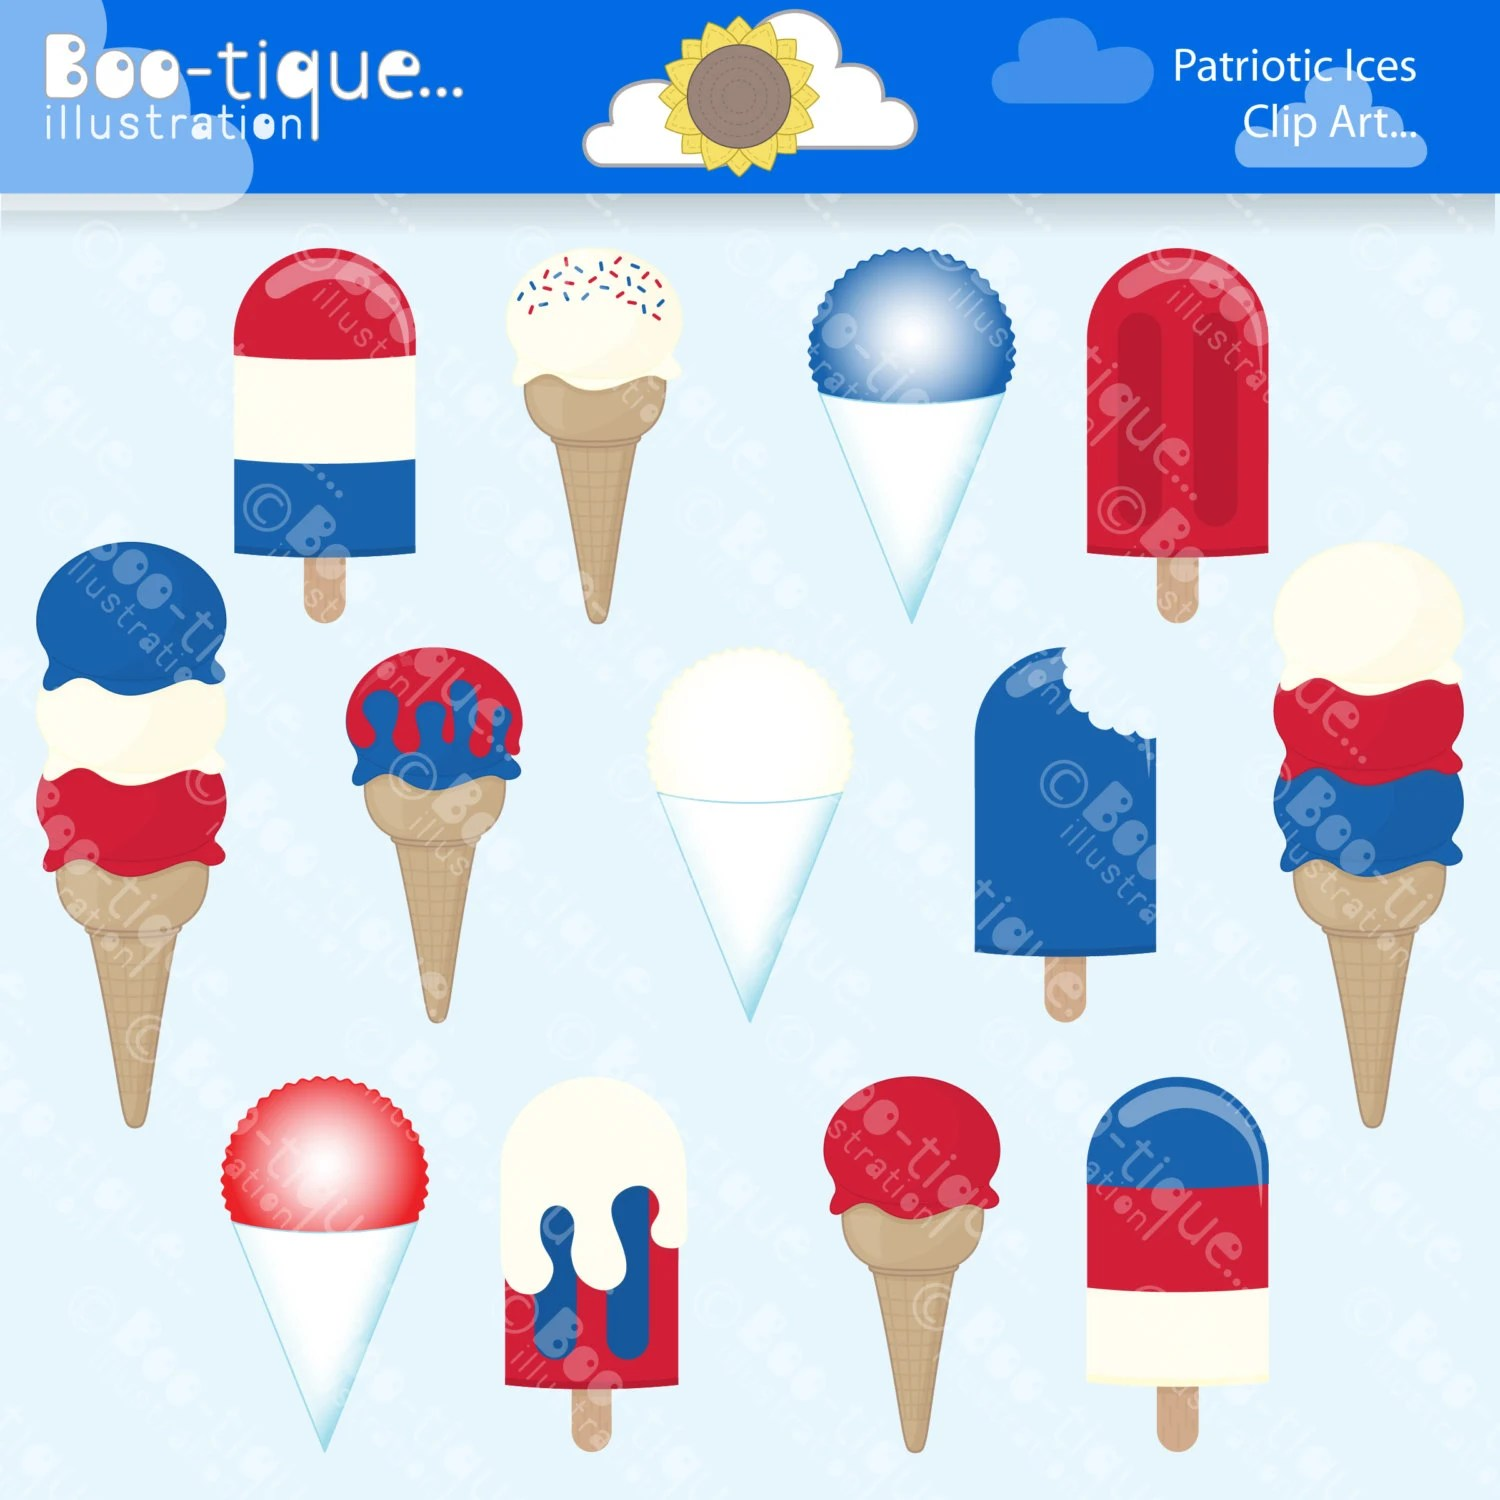 hight resolution of red white and blue ices clipart july 4th clipart ice cream clipart independence day clip art snow cones clipart popsicles clip art